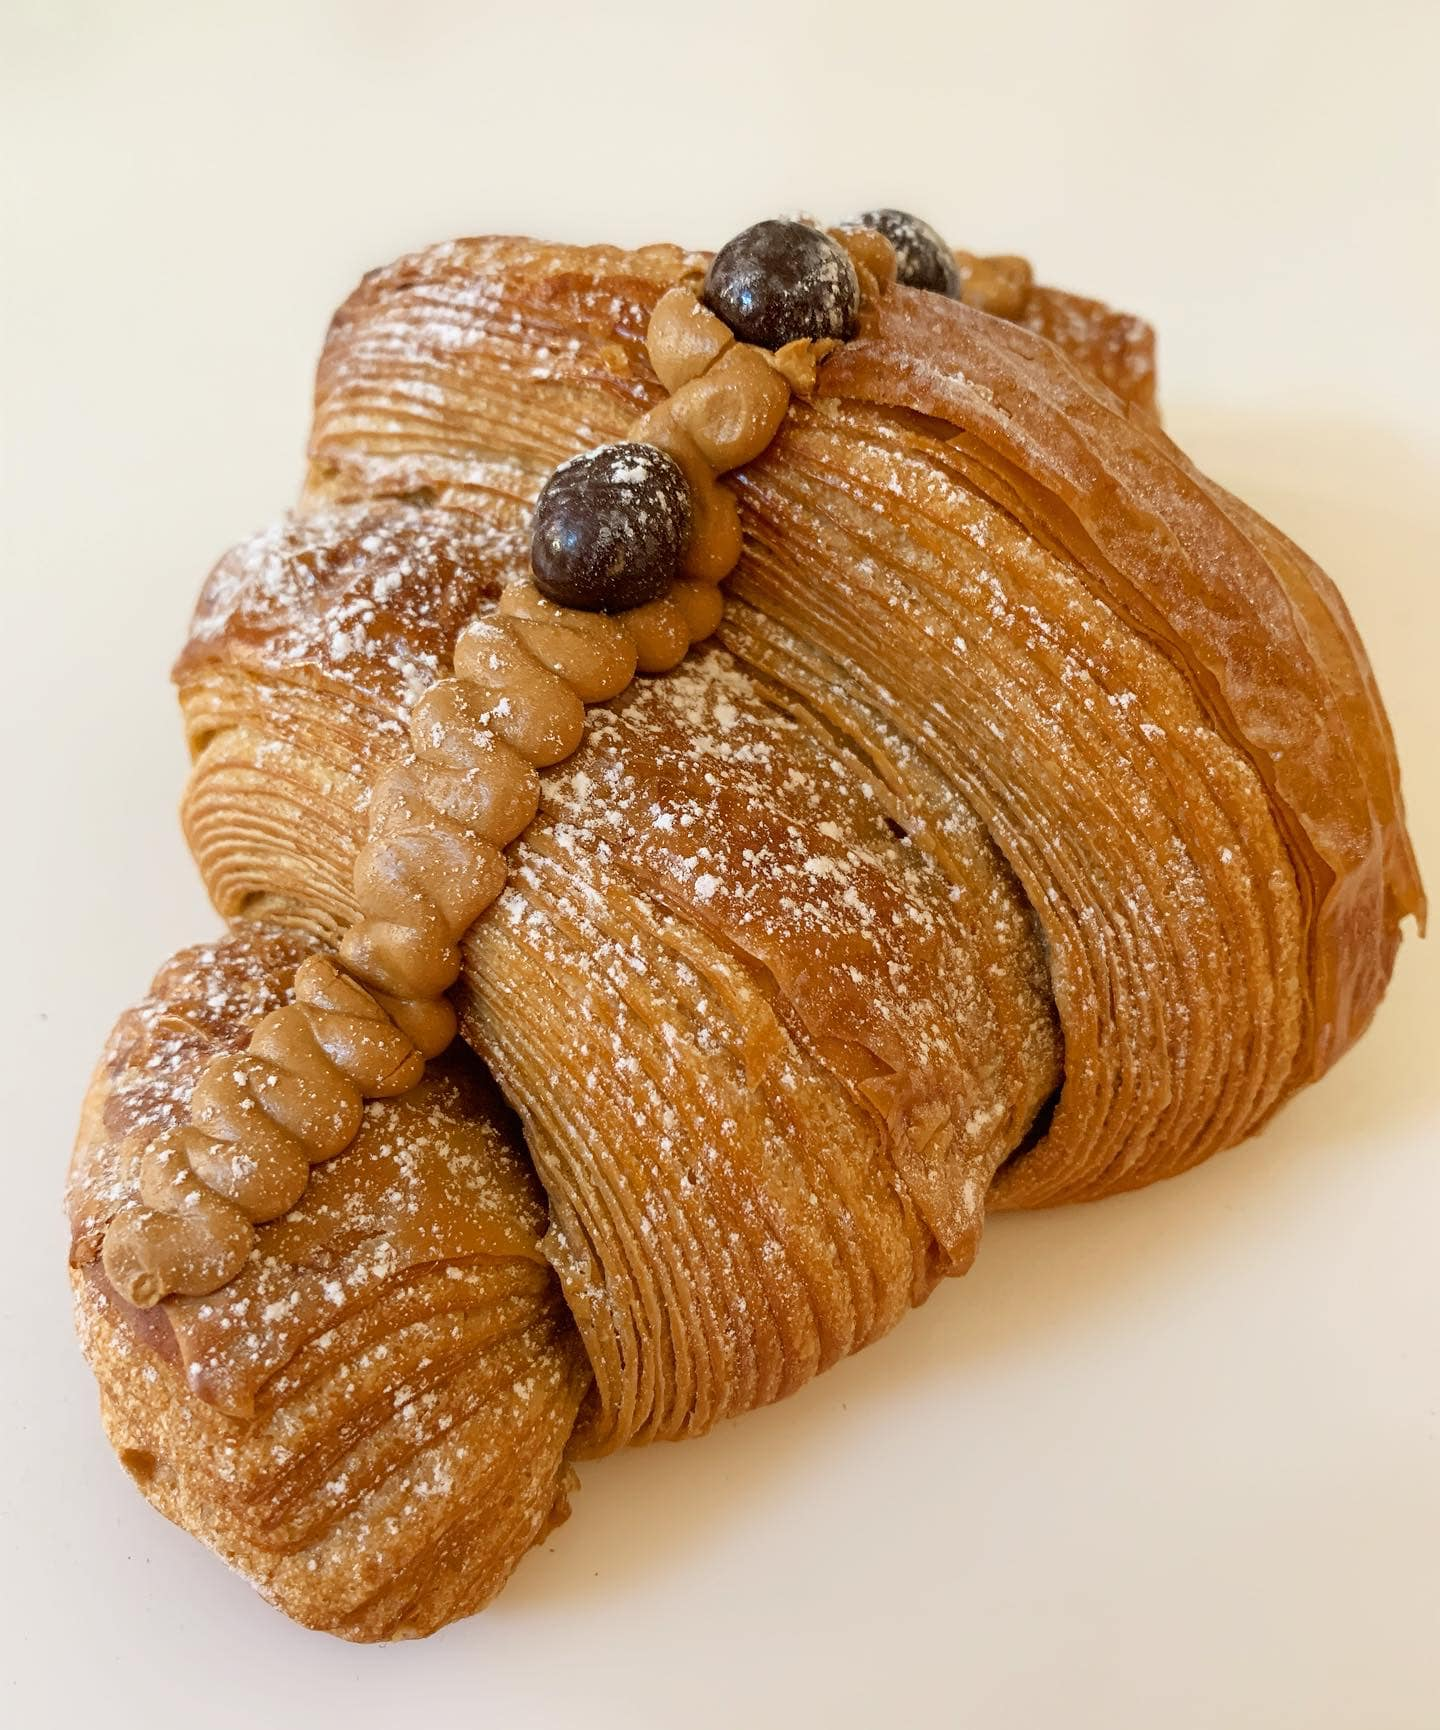 coffee croissant leicester